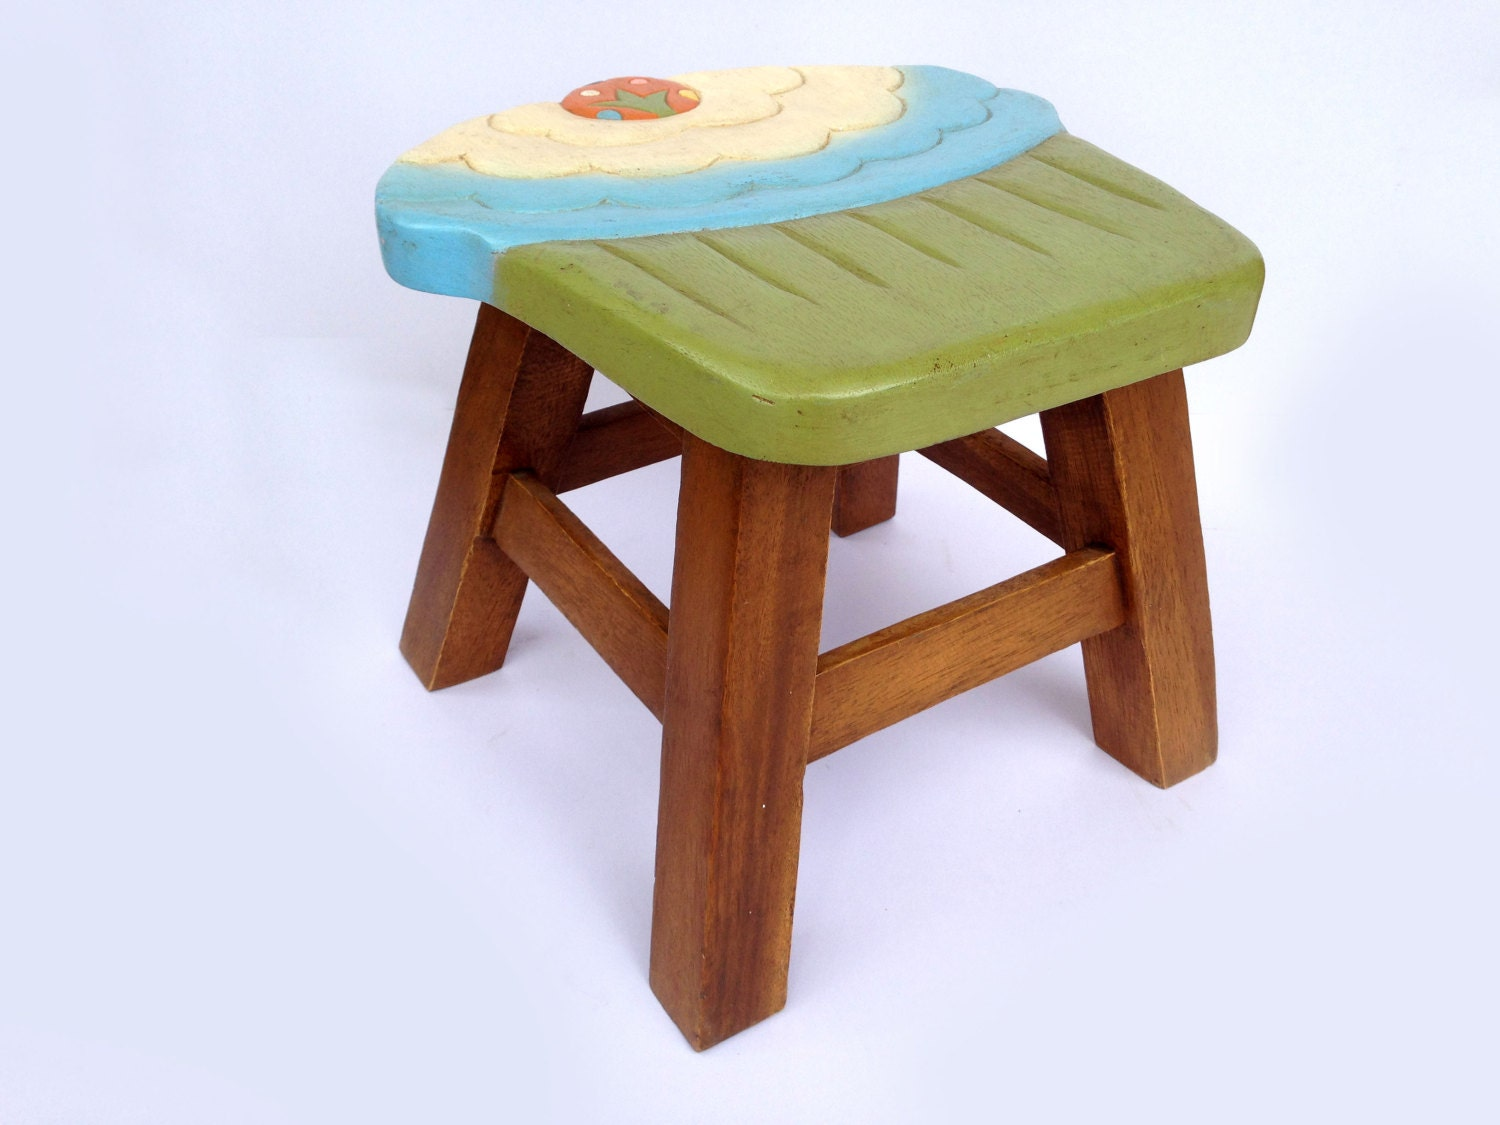 Cupcake Stool Kids Stool Sitting Stool Hand Painted Wooden